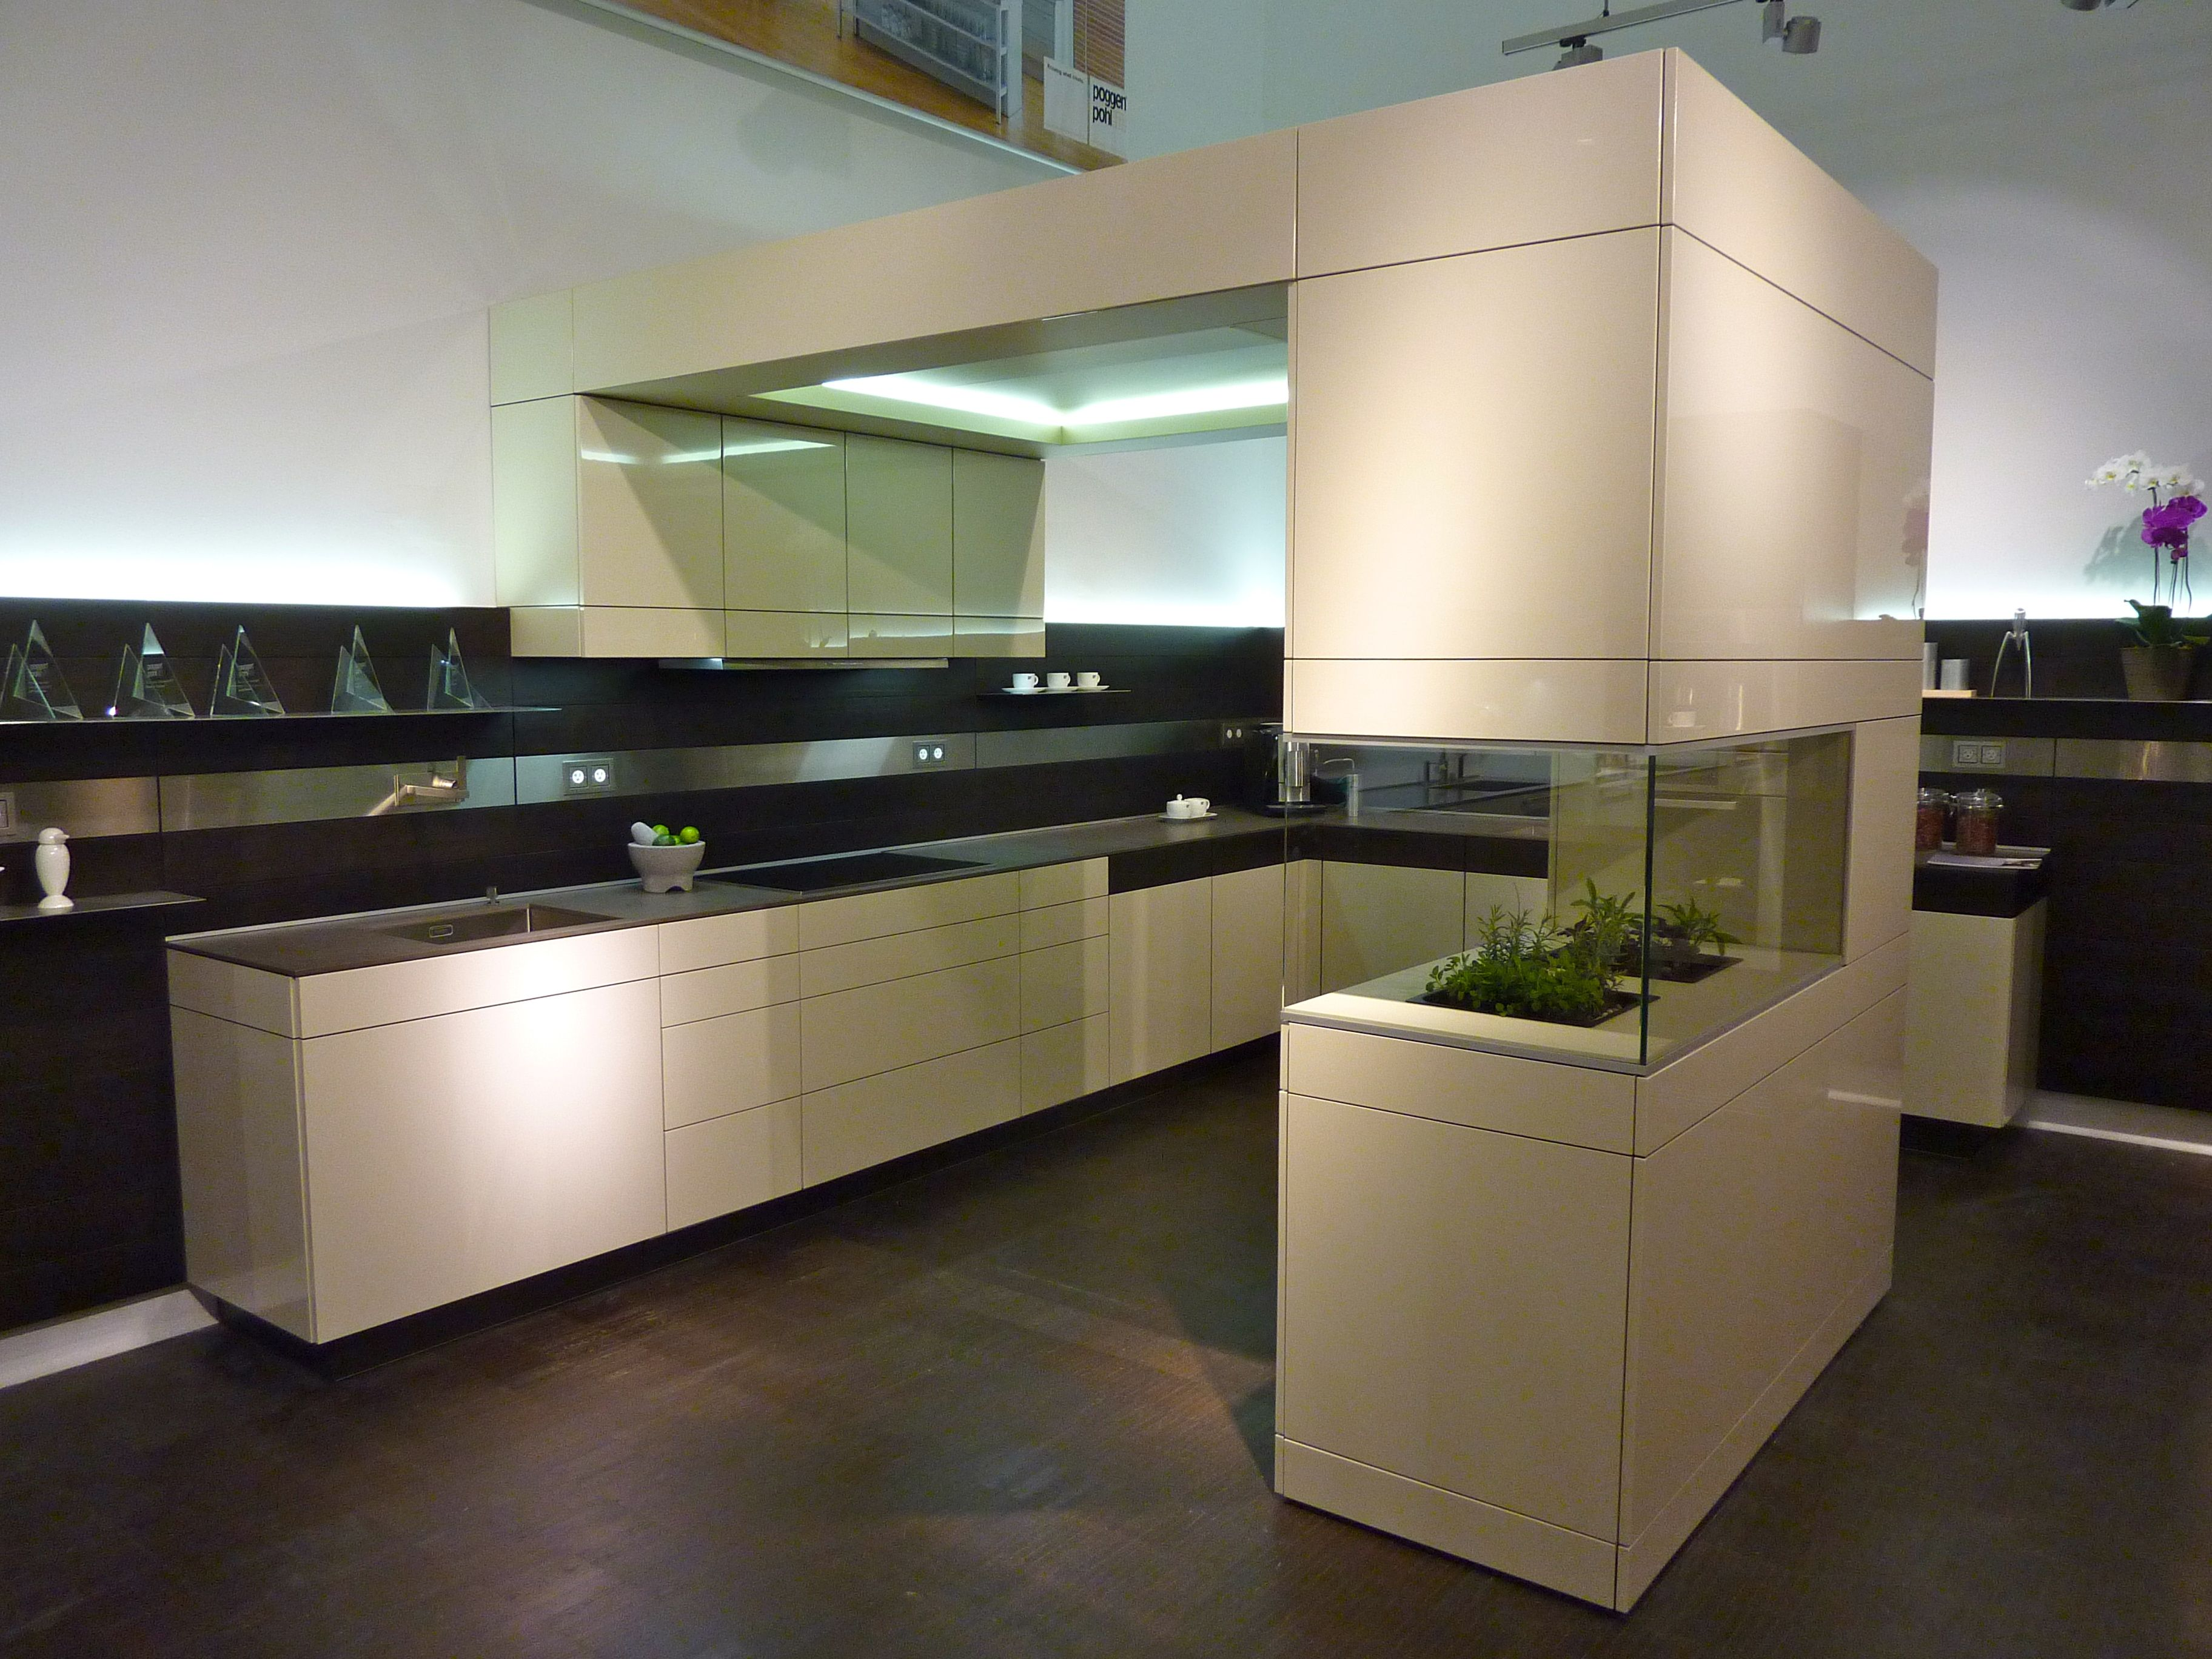 Artesio Kitchen By Poggenpohl Alabaster And Pine Terra Finish See This Fabulous Design And Mor Kitchen Design Luxury Kitchen Design Kitchen Cabinet Design